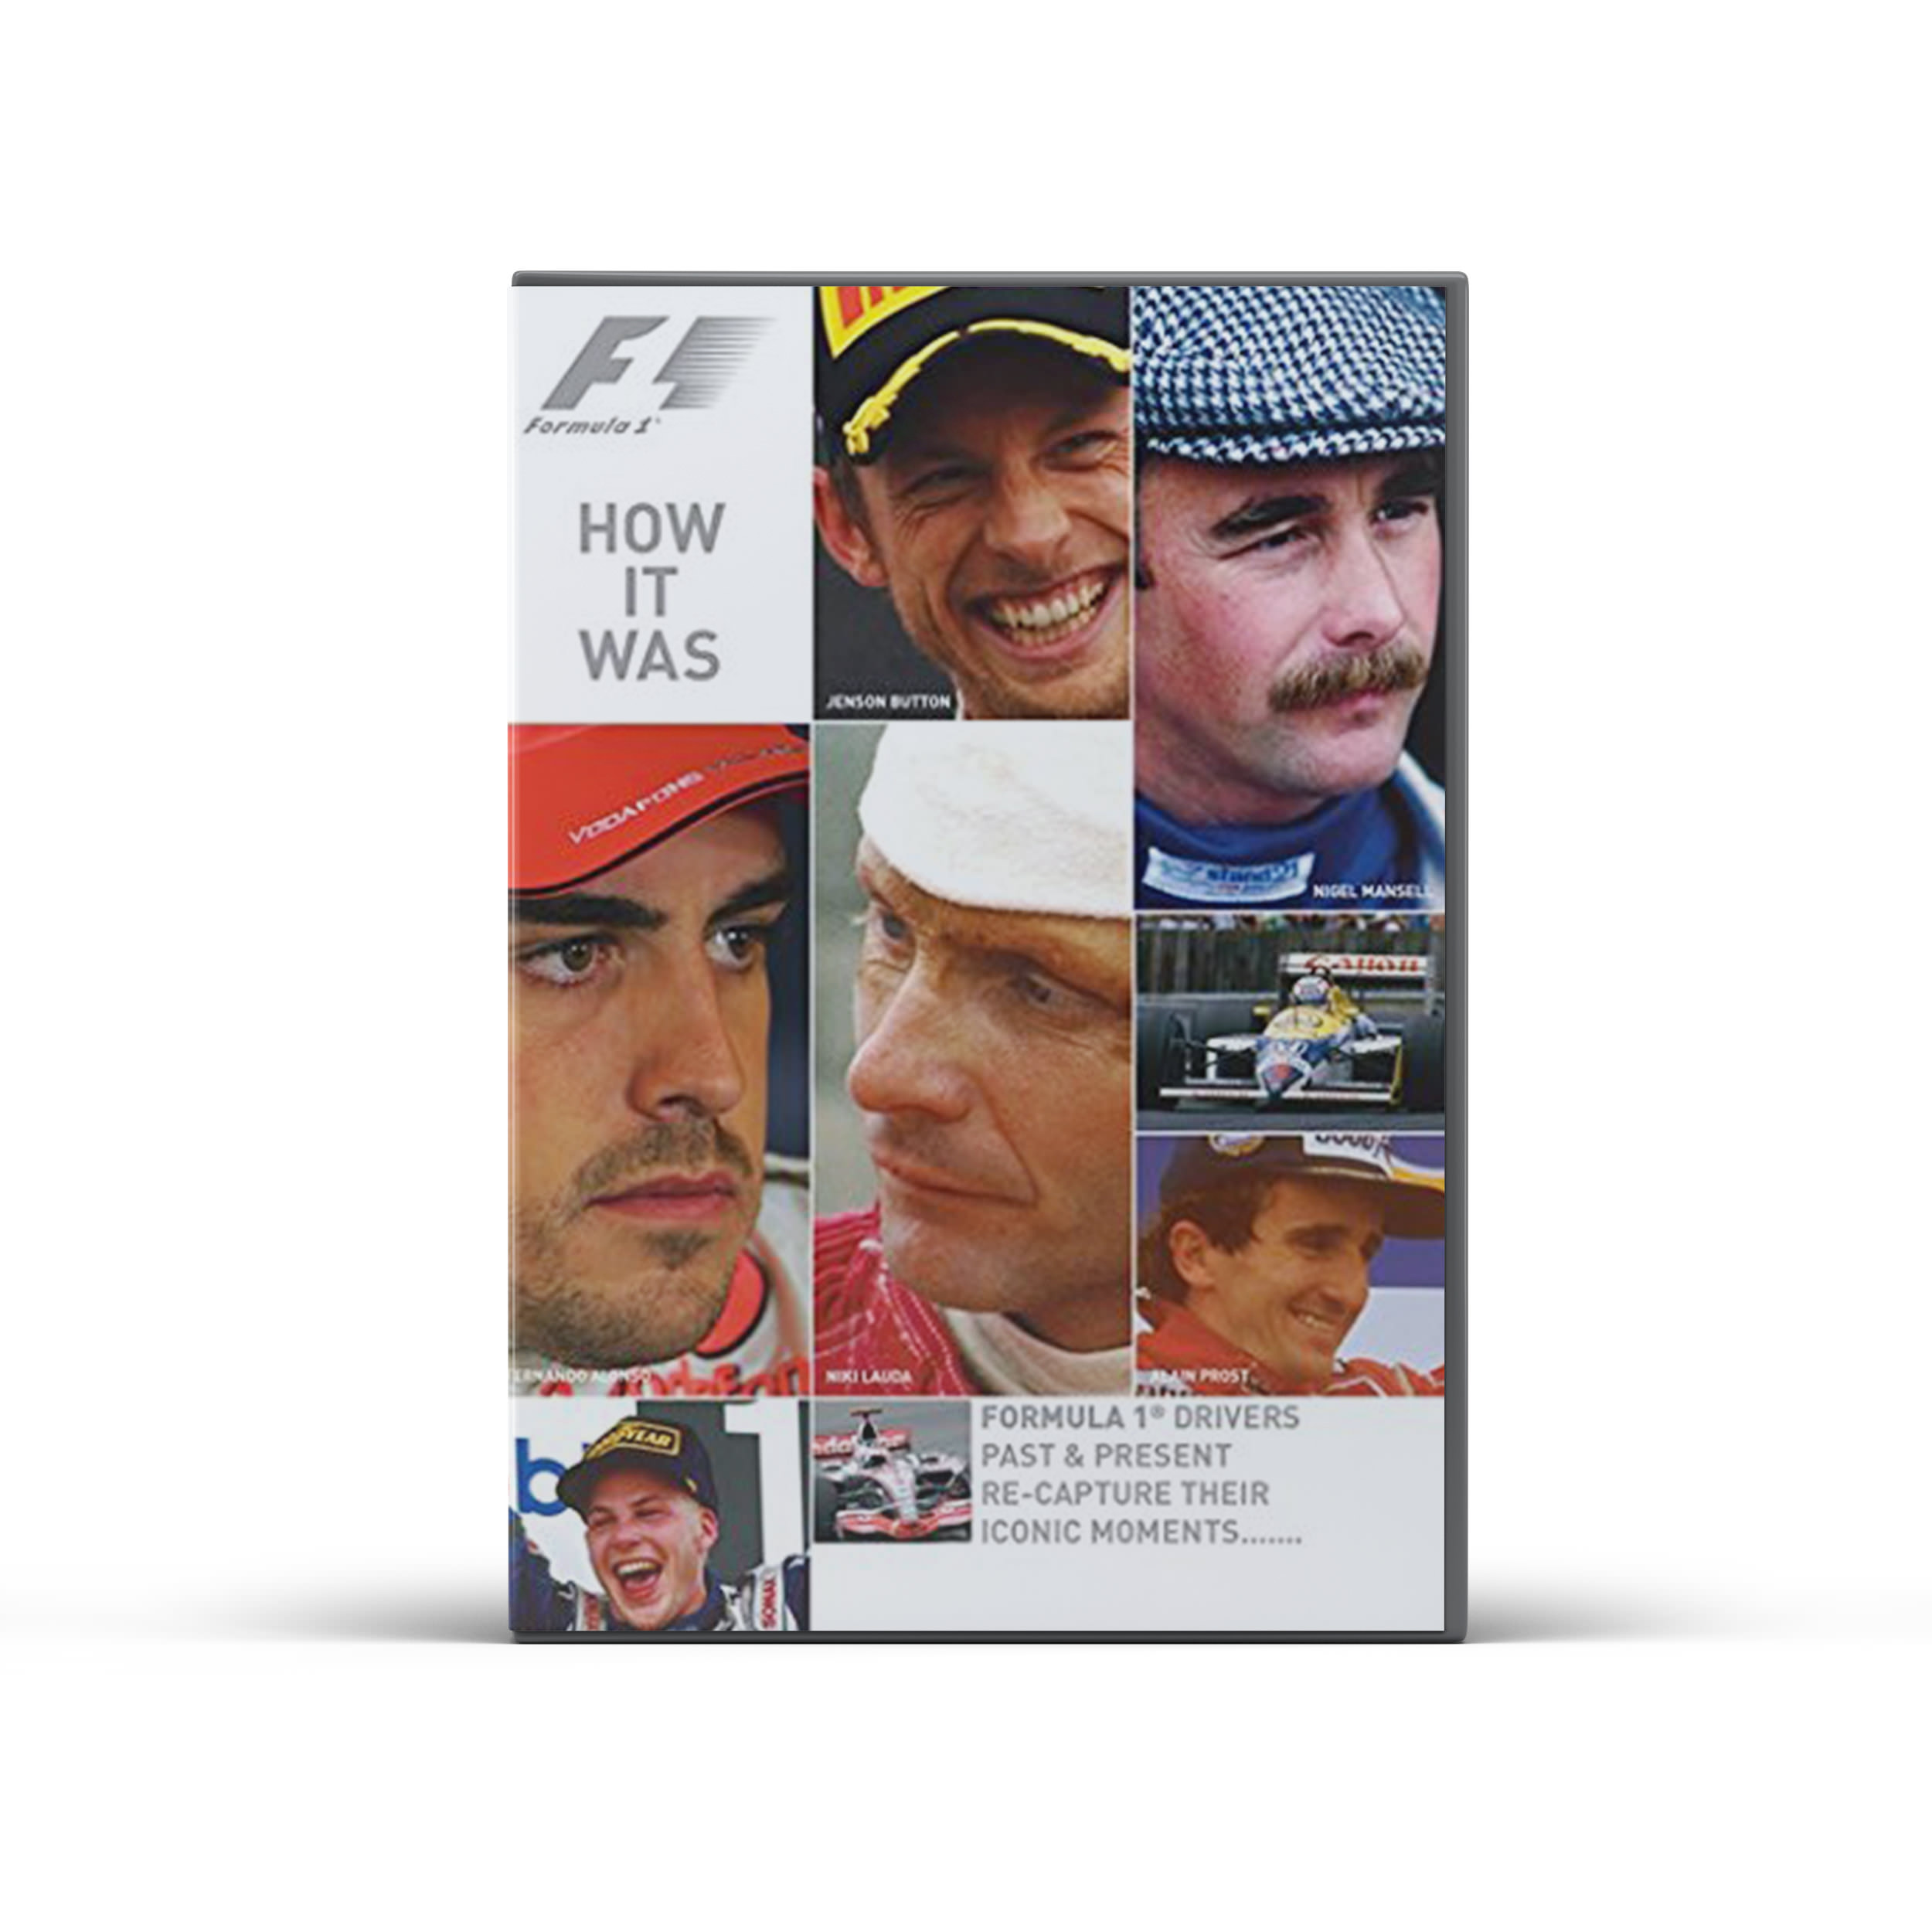 Product image for F1 'How it Was' DVD